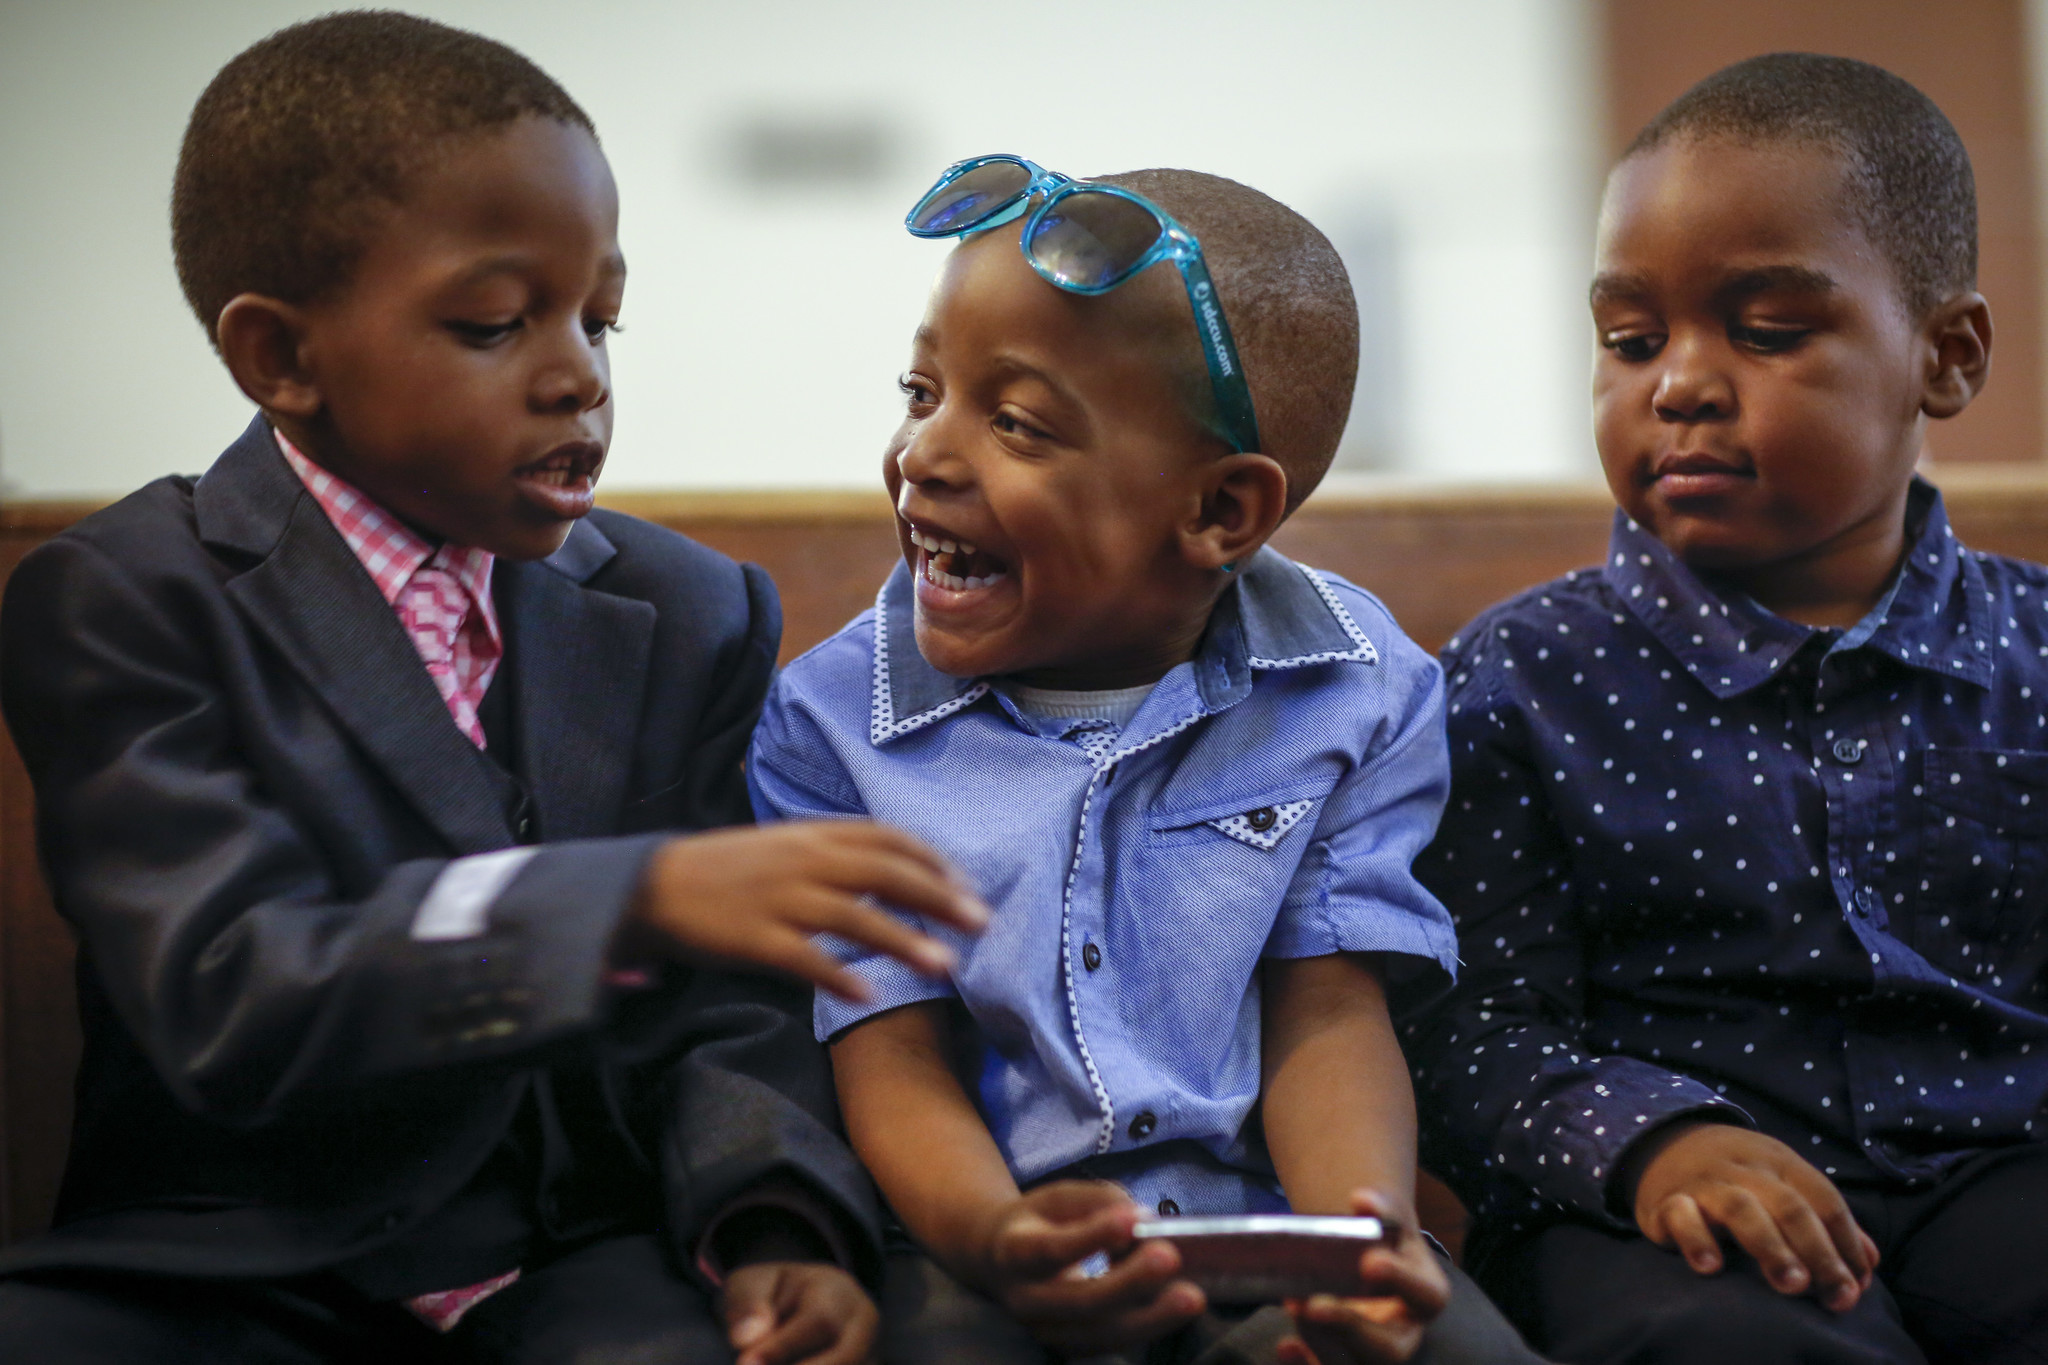 Ryan Labady, 5, Joshua Valsaint, 4, and Ruben Jacques, 4 from left, talk about playing the harmonica, in Joshua's hands, during a service at Christ United Methodist Church.